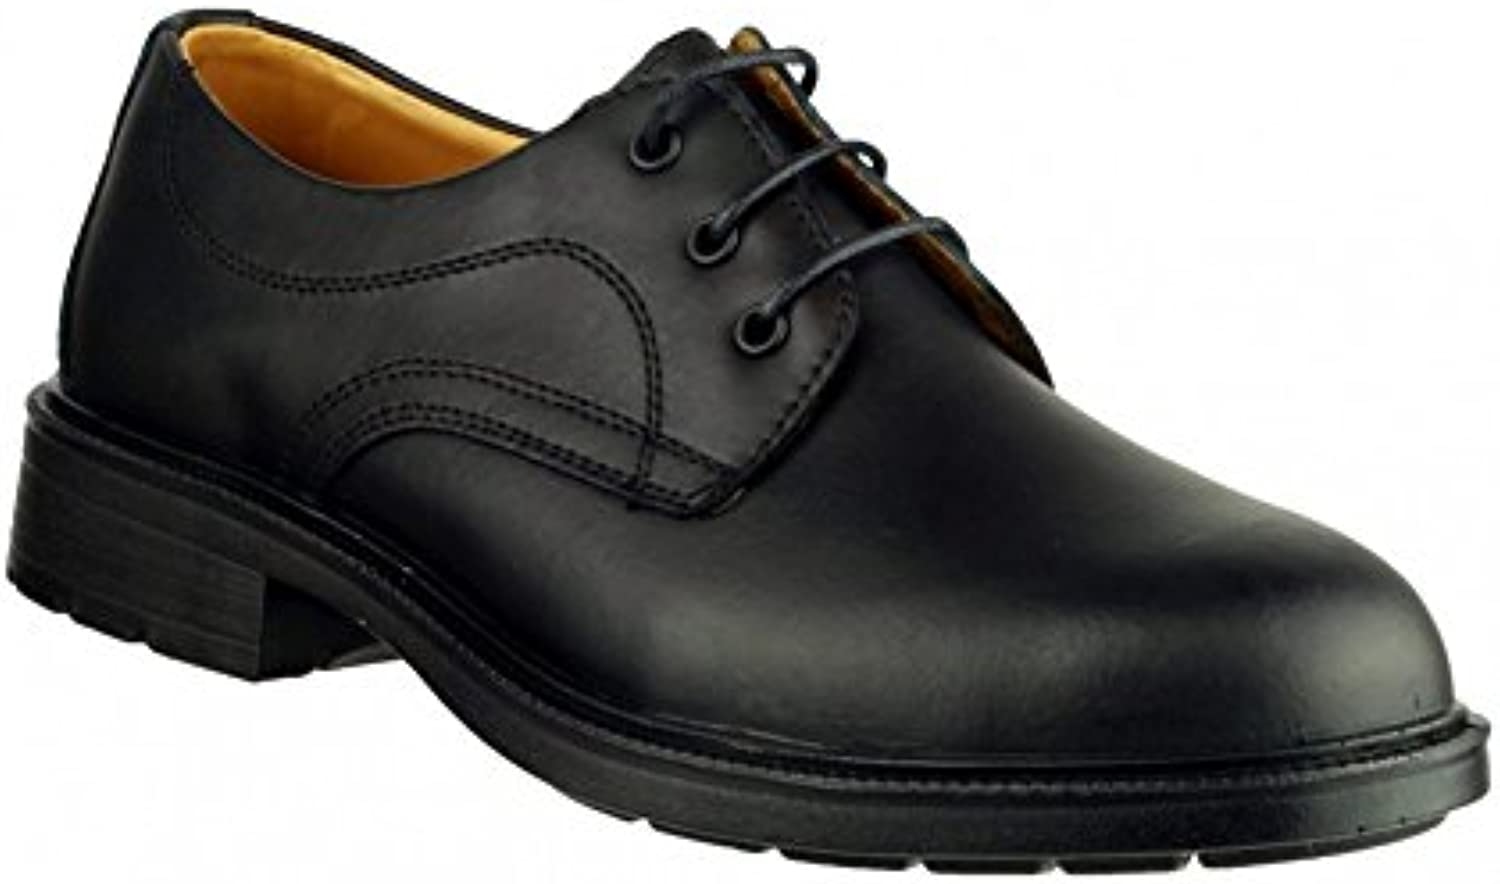 Amblers Safety Uomo FS45 Gibson Scarpe Antinfortunistiche Sicurezza Sicurezza Sicurezza Stringate   Outlet Online Shop    Uomini/Donna Scarpa  d8fc8e